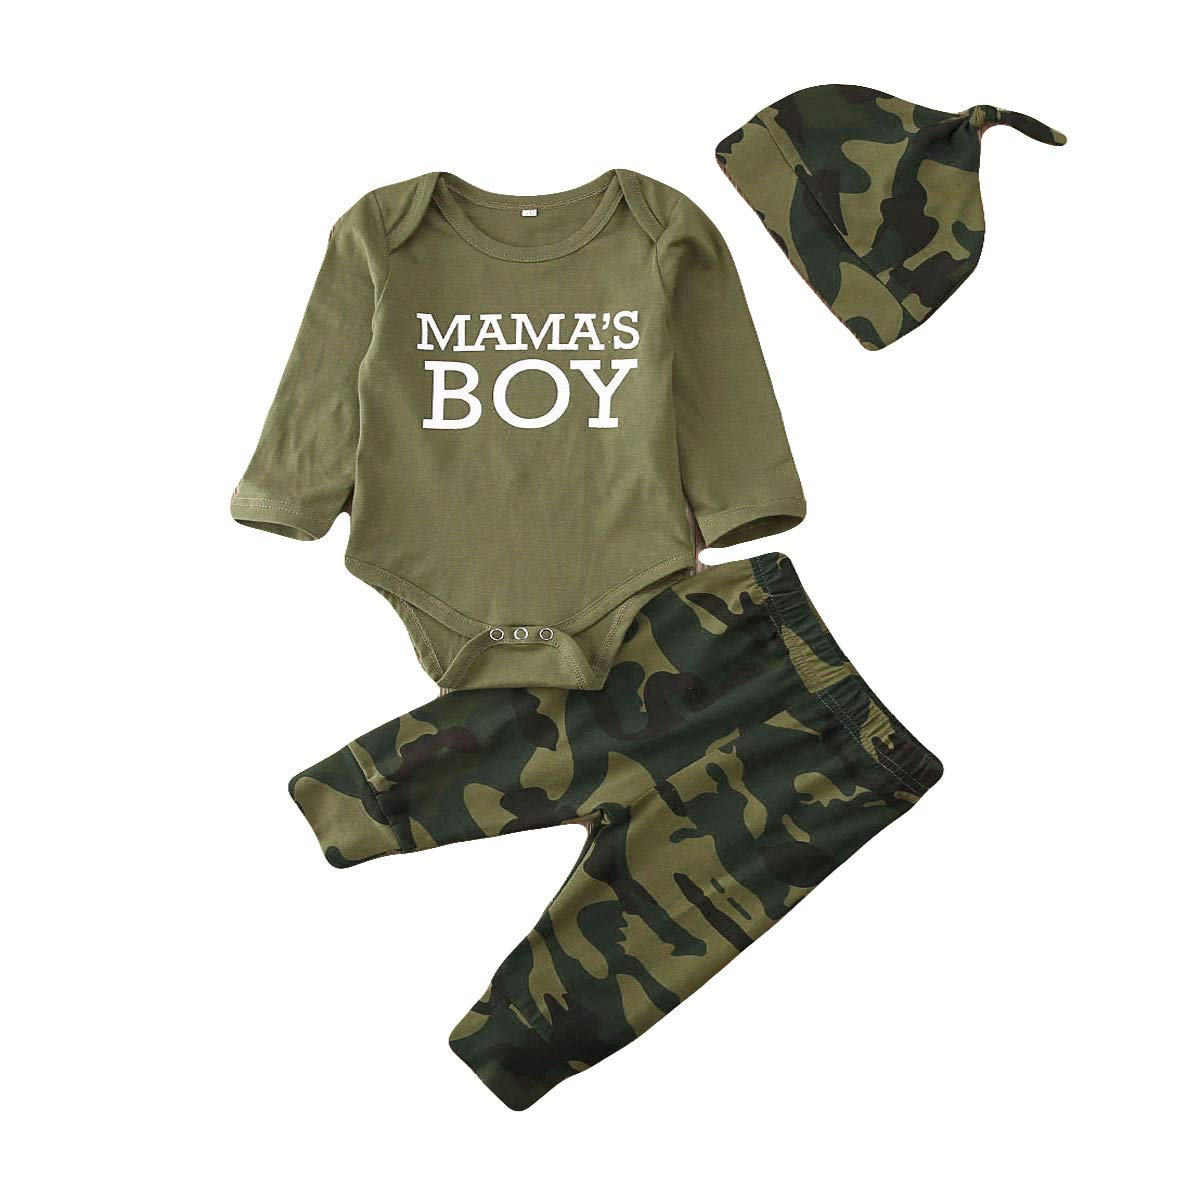 3Pcs Newborn Baby Boys Girls Camouflage Clothes Short Sleeve Letter Printed Romper Tops+Long Pants+Hat Outfits Set